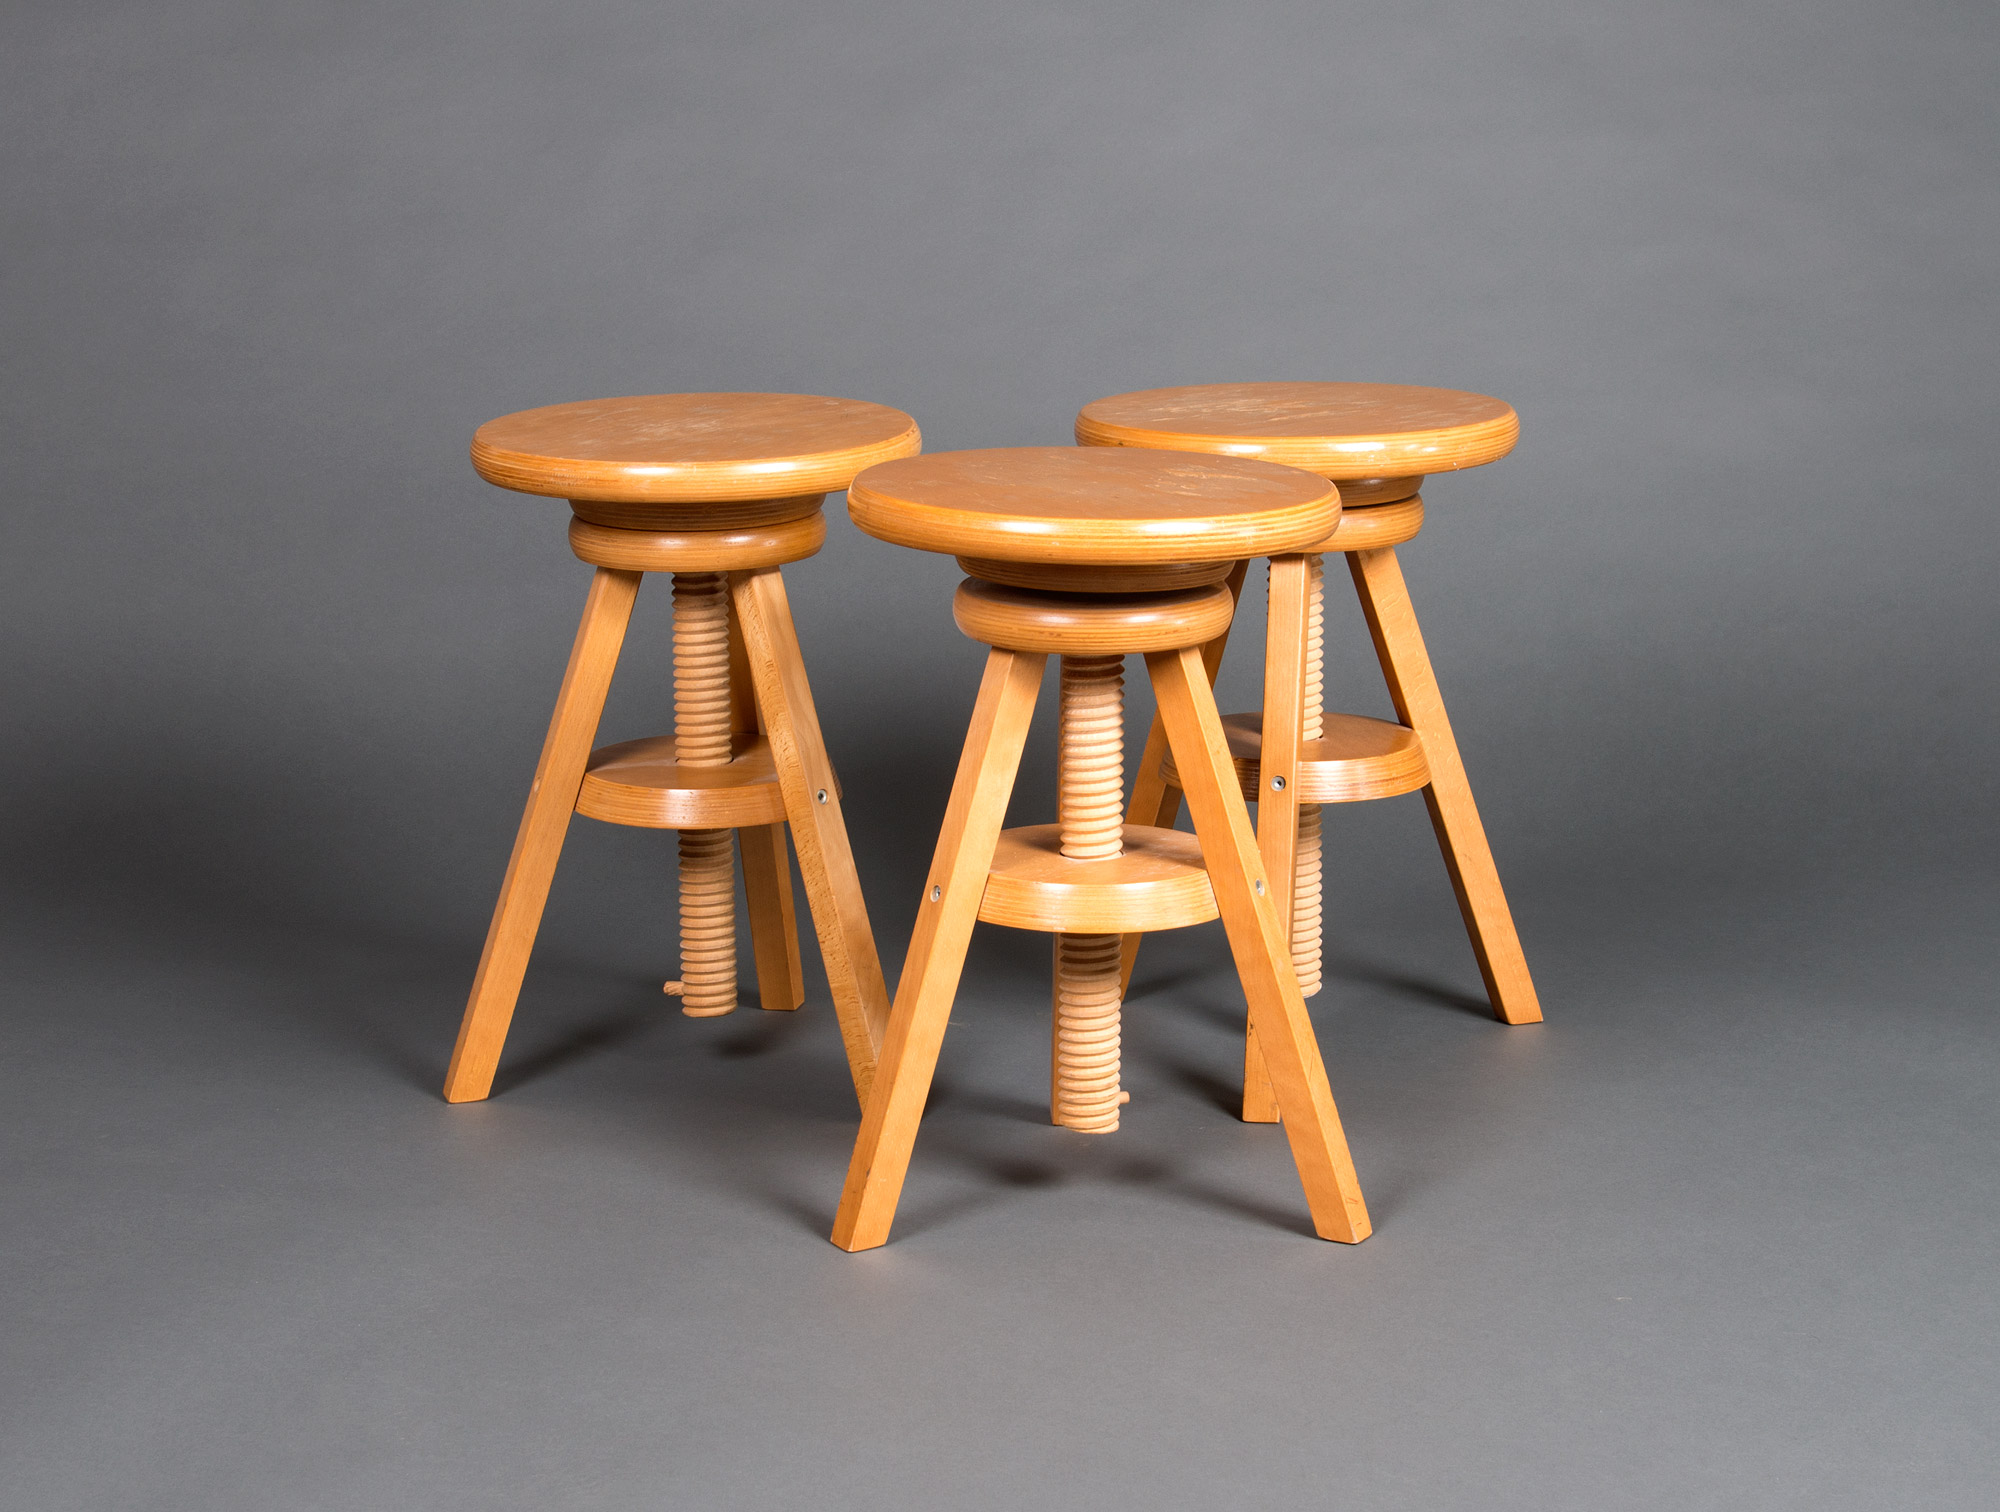 Wooden Screw Stools Soubrier Rent Seats Stool Xxth